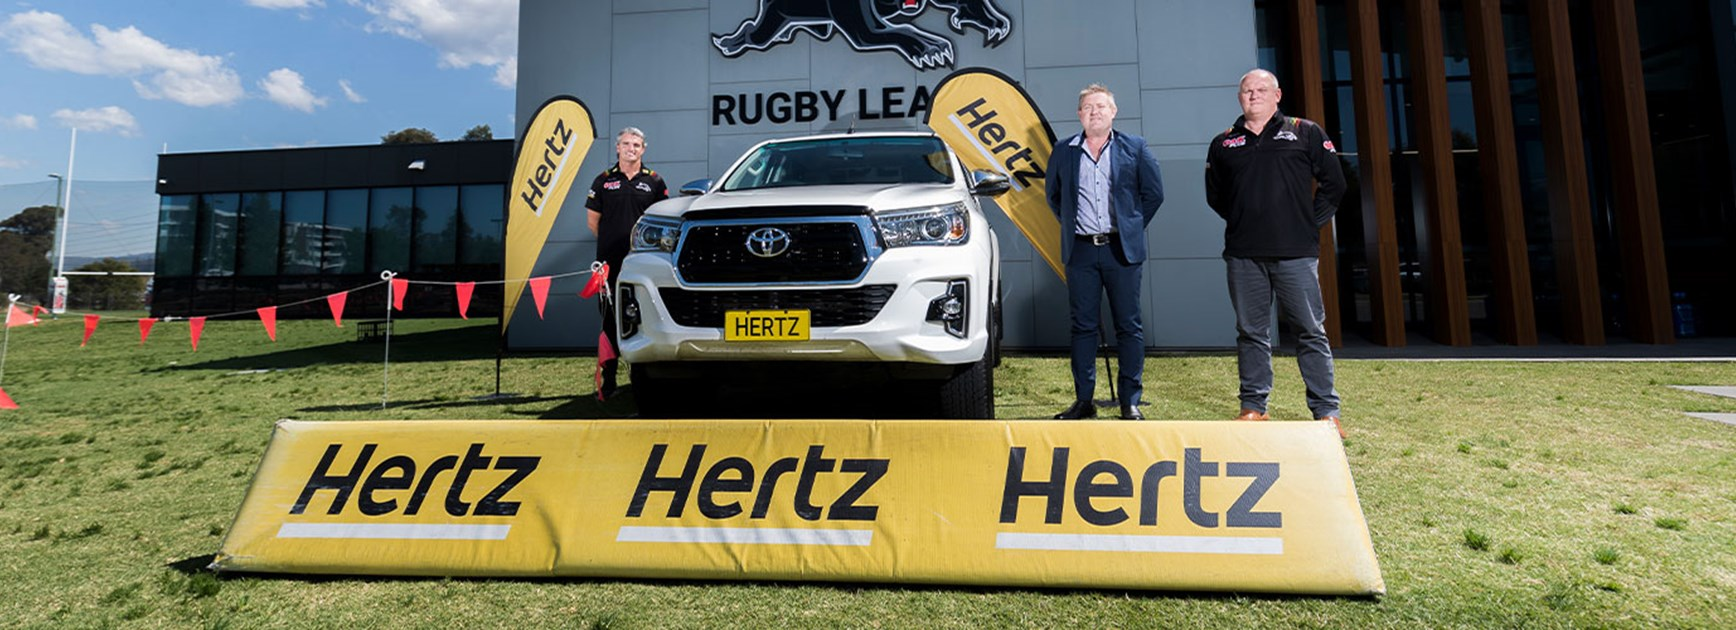 Hertz extends Panthers partnership